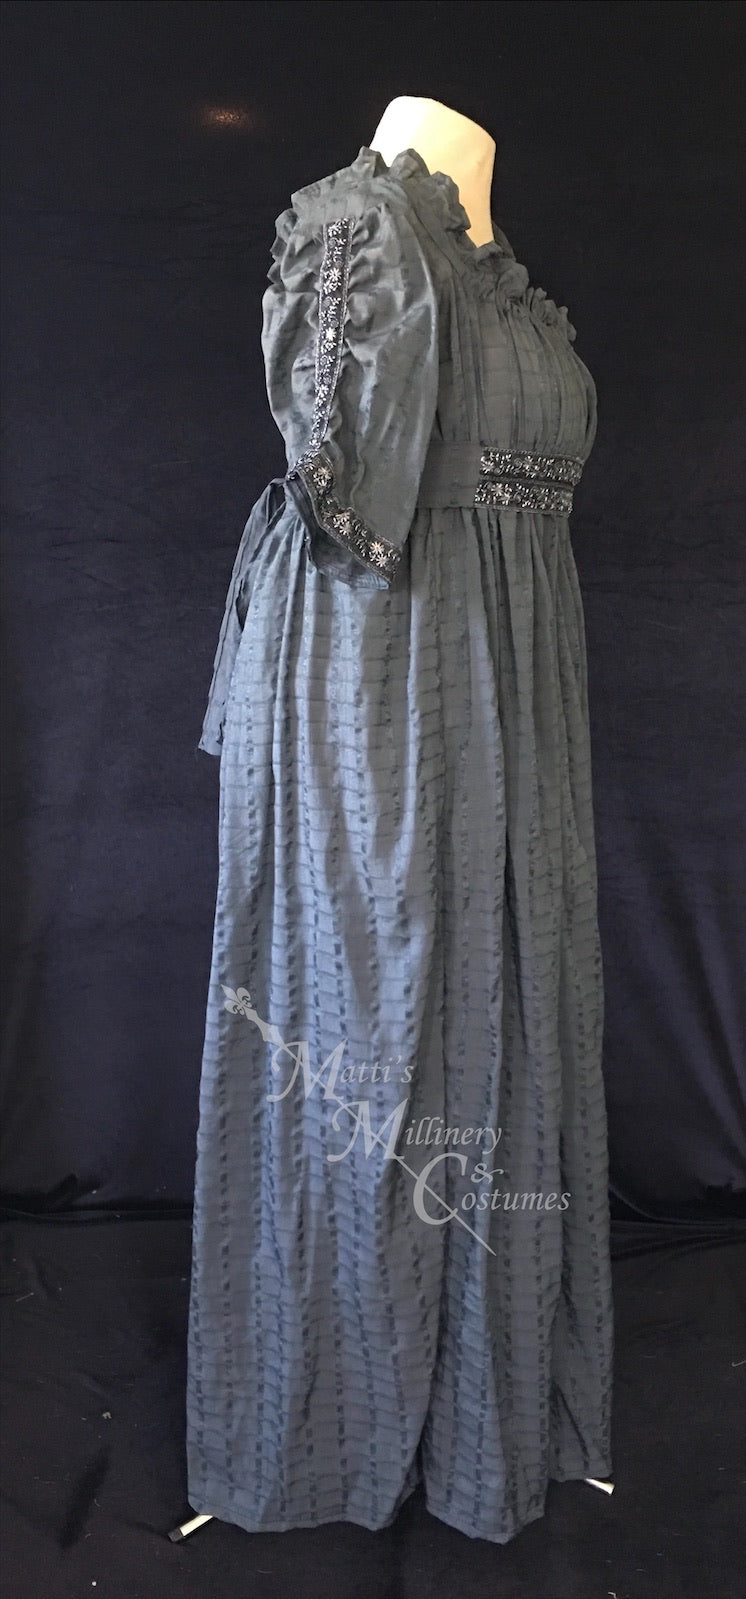 Magic Pewter 1790s Round Gown Jane Austen Regency Day Dress in cotton